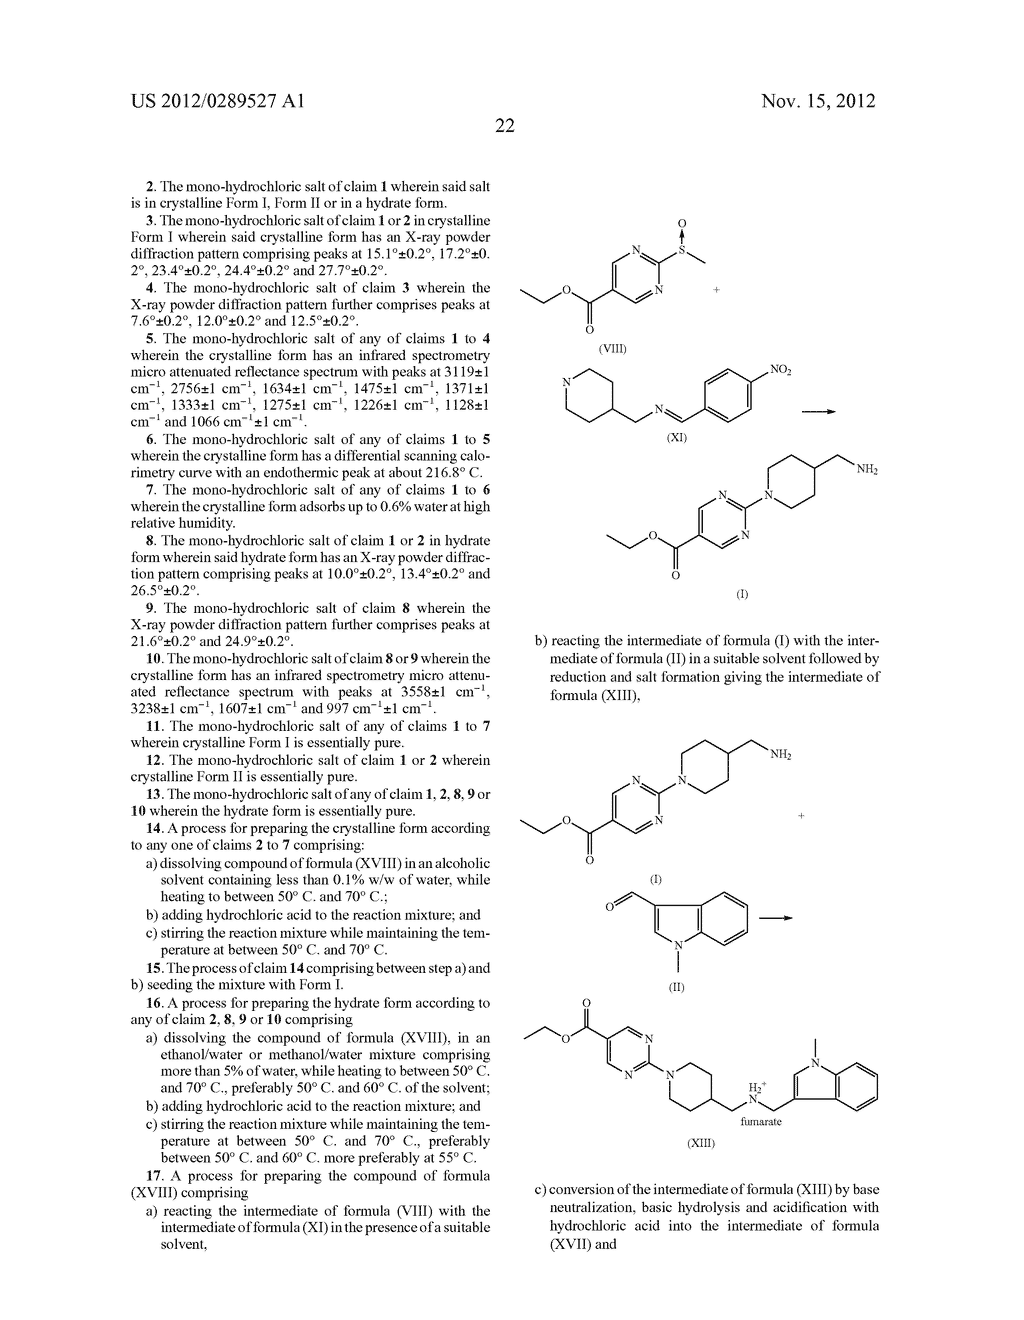 MONO-HYDROCHLORIC SALTS OF AN INHIBITOR OF HISTONE DEACETYLASE - diagram, schematic, and image 39